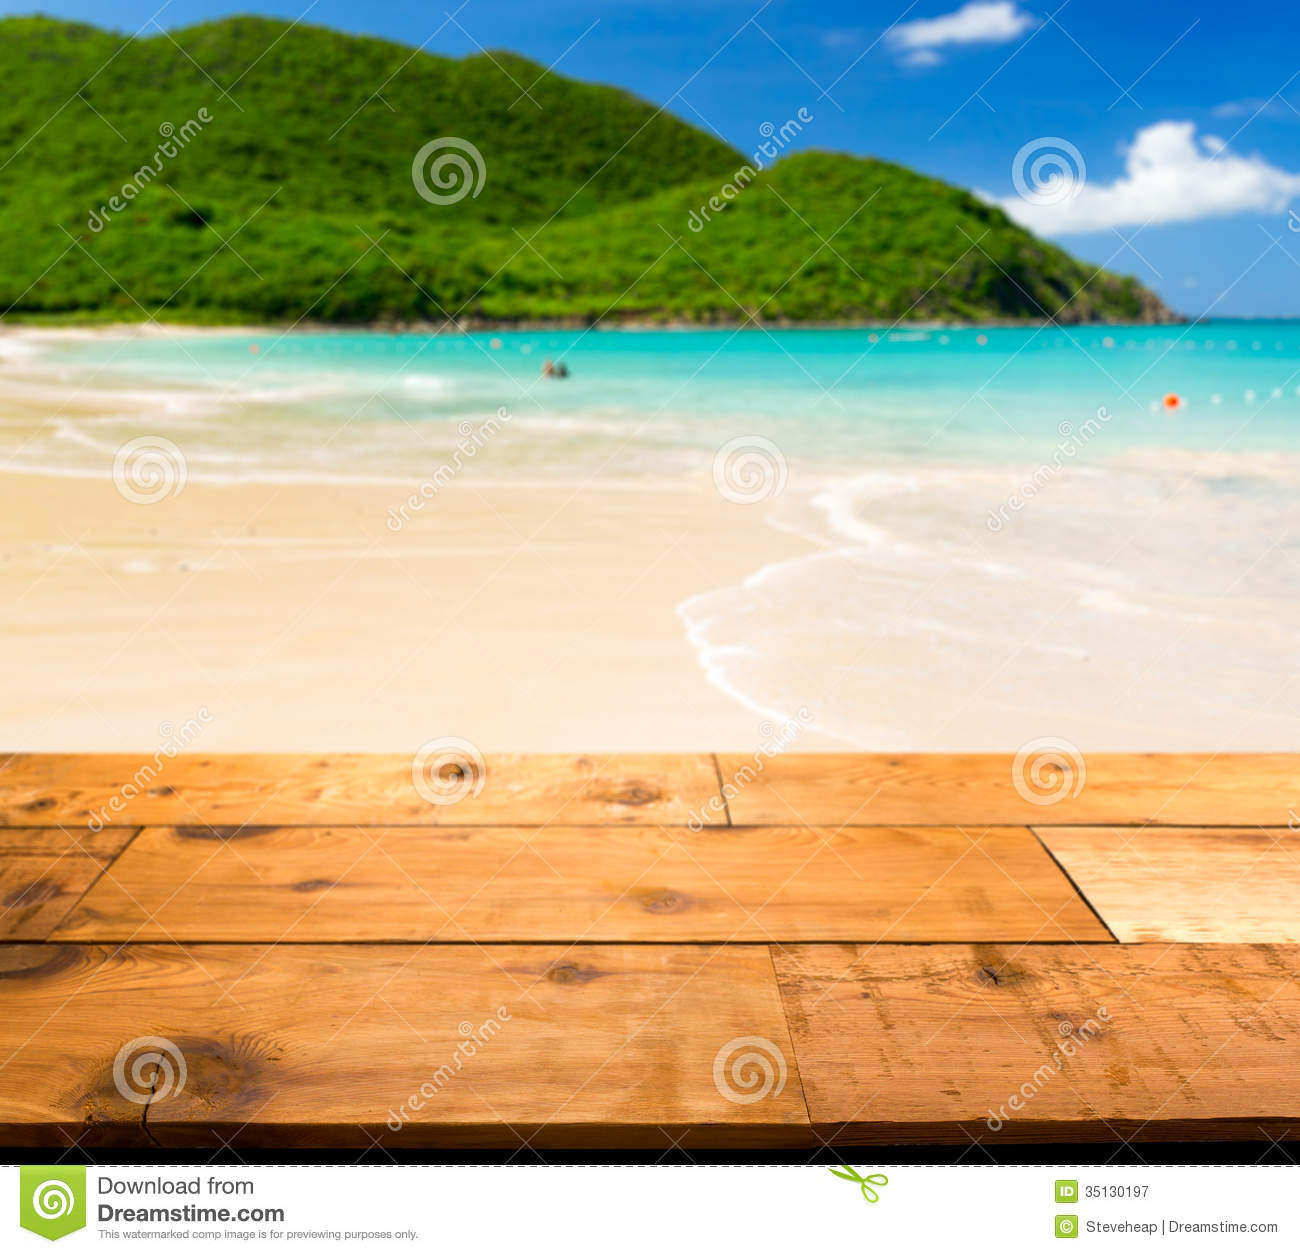 Warm Sandy Beach In Caribbean By Wooden Decking Stock Image - Image of mountains, relax: 35130197